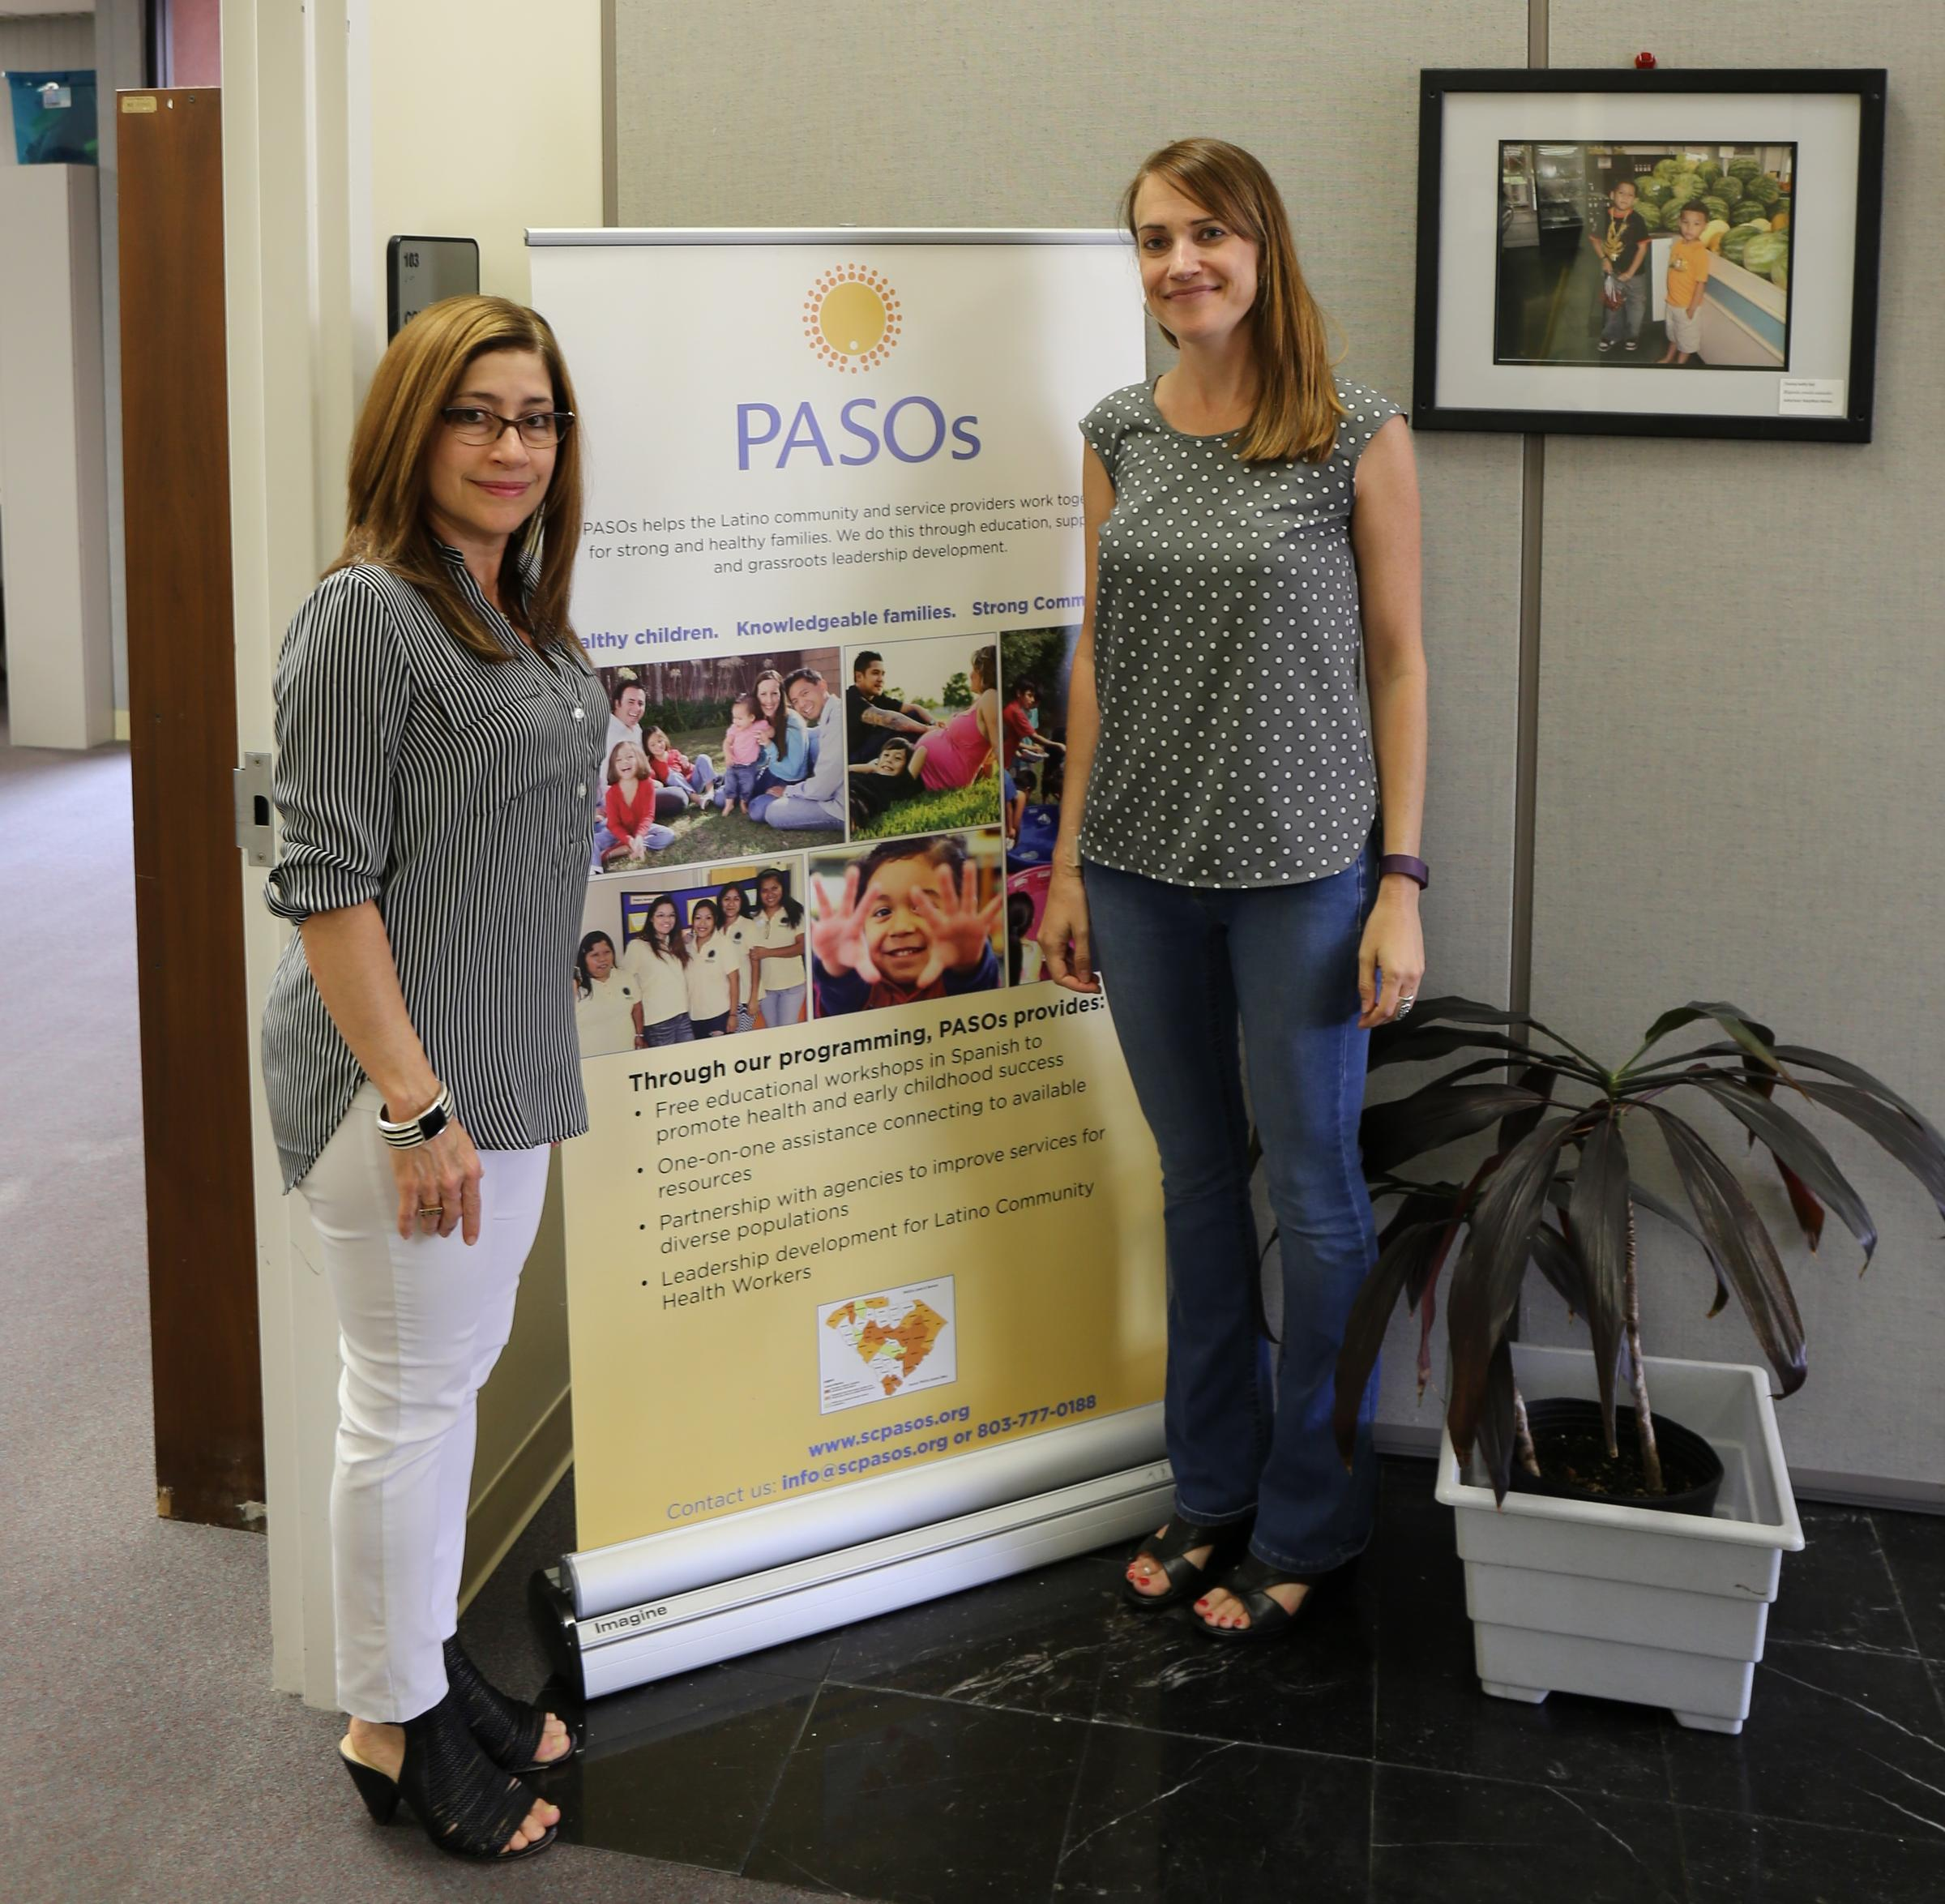 Nonprofit Pasos Provides Resources For States Underserved Latino